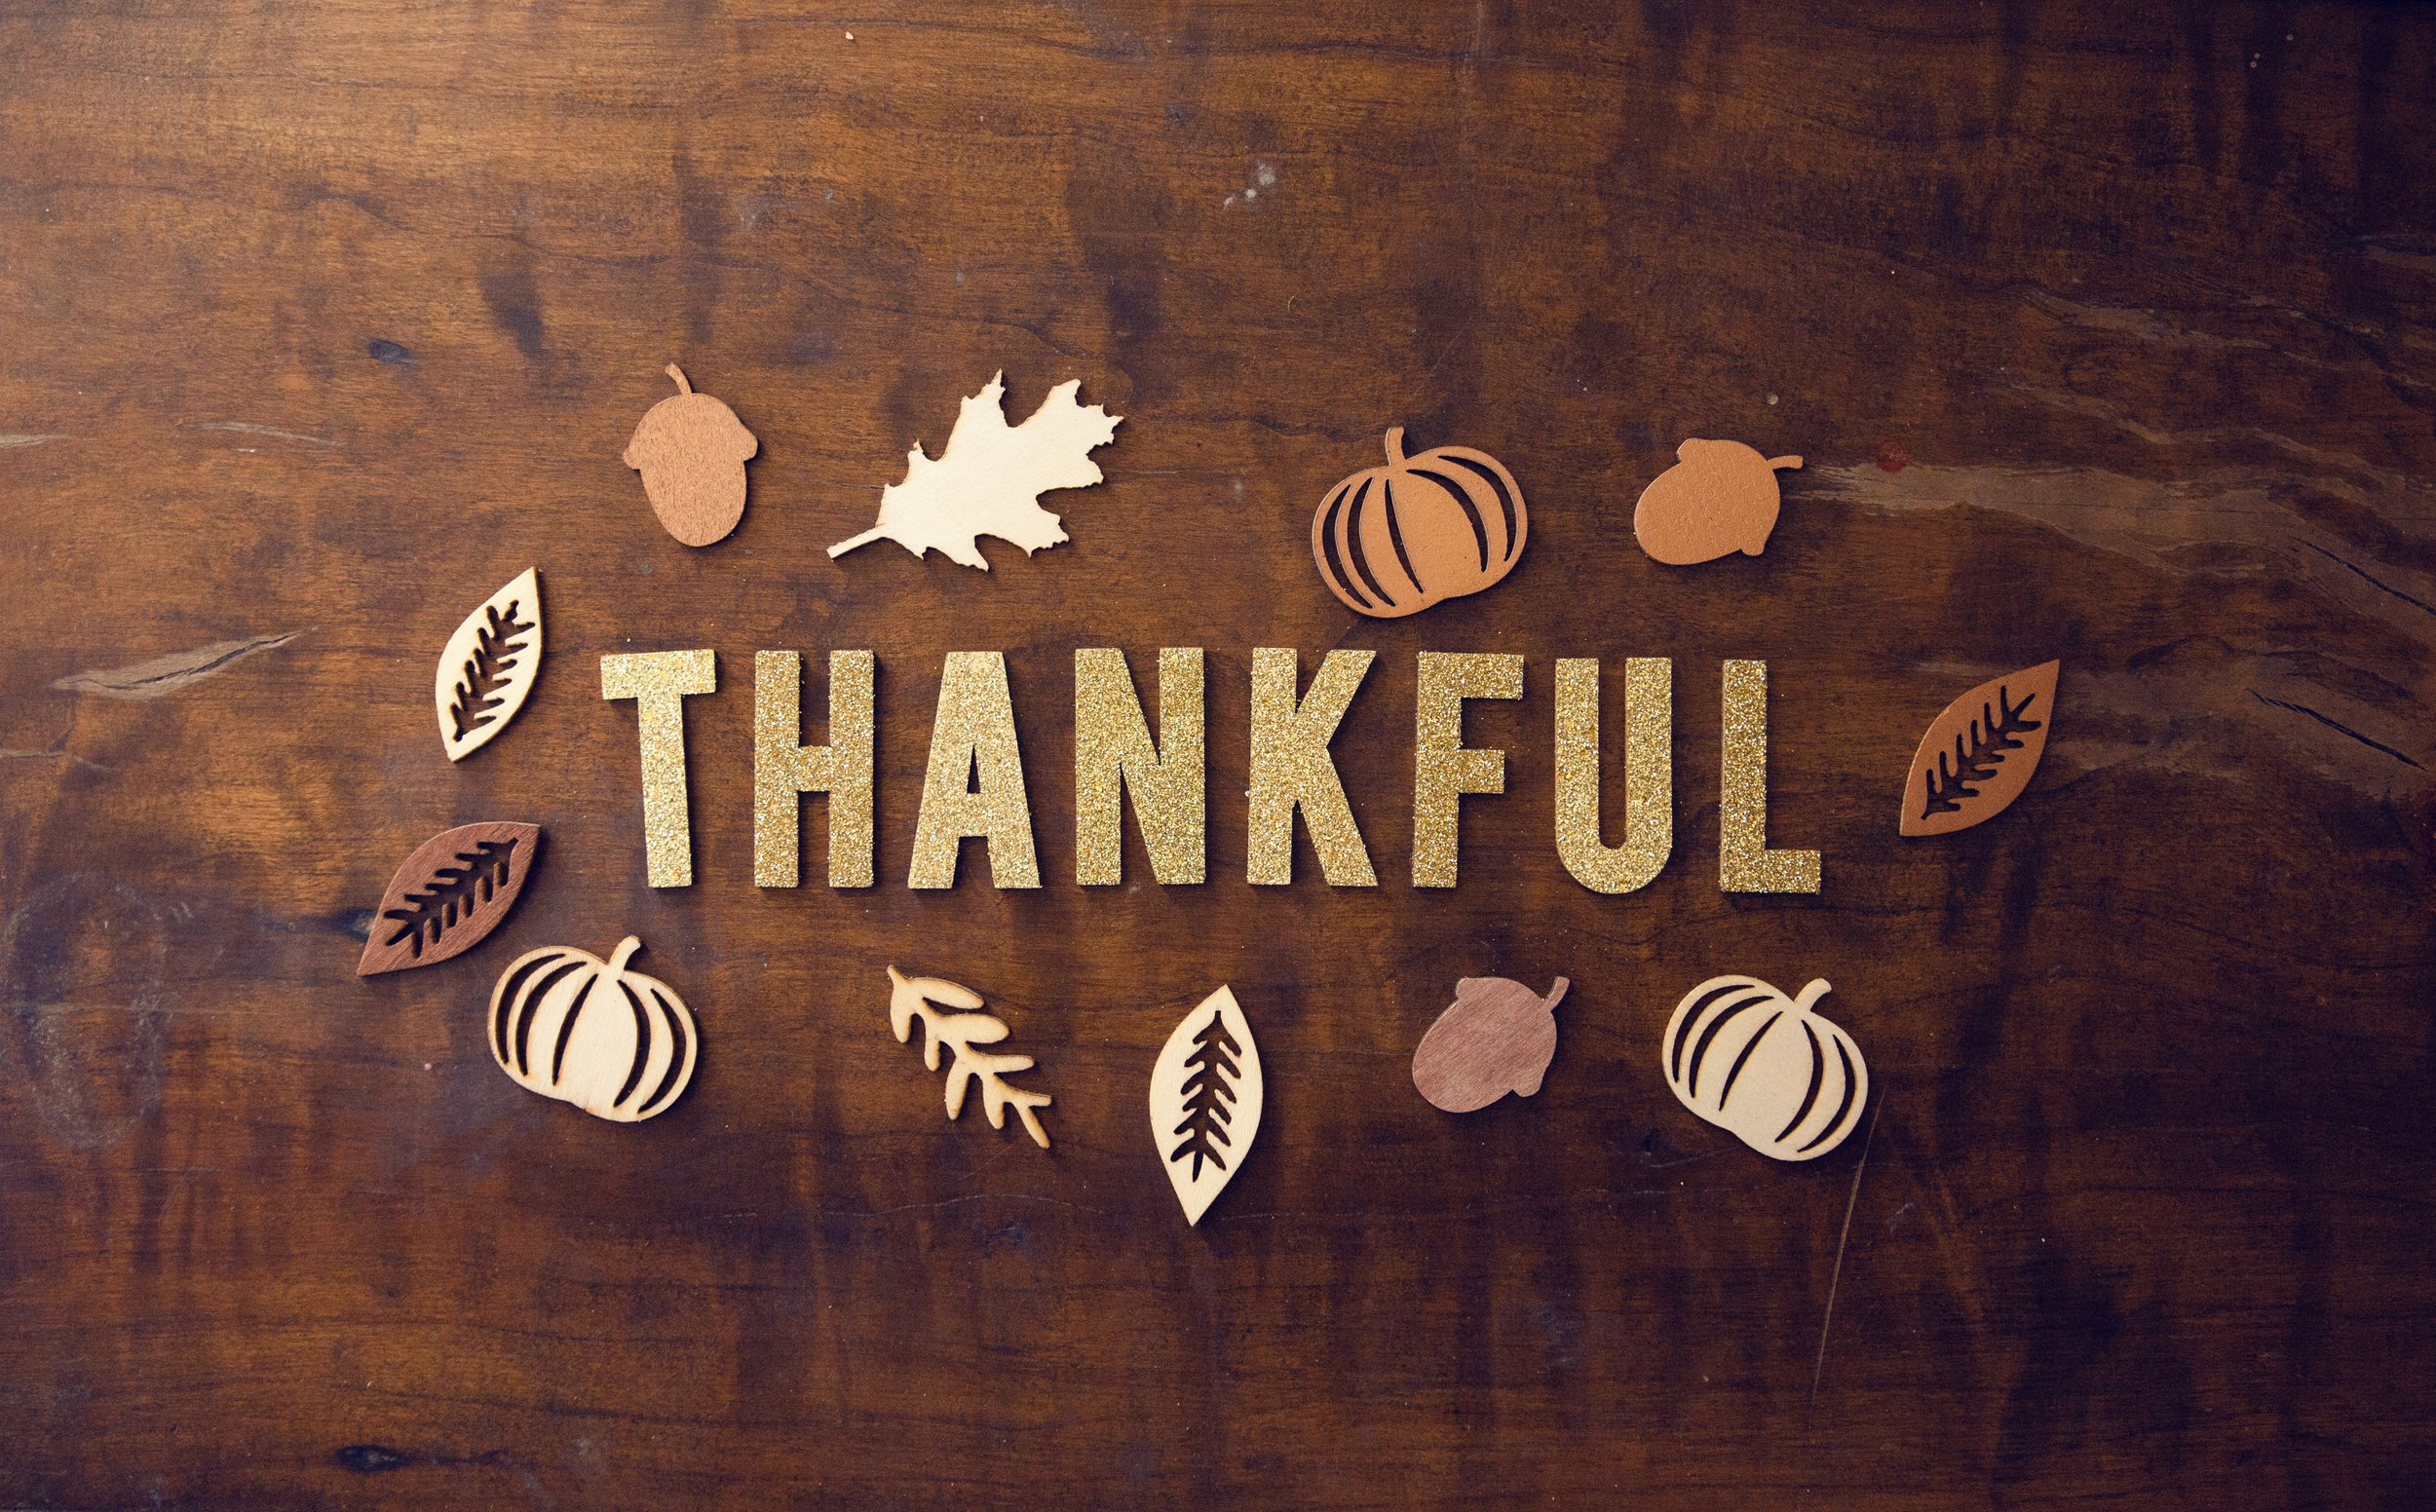 10 Things to be Thankful for This Holiday Season - The New in Lynchburg Team has taken some time to look at all of the things we can be thankful for this holiday season.